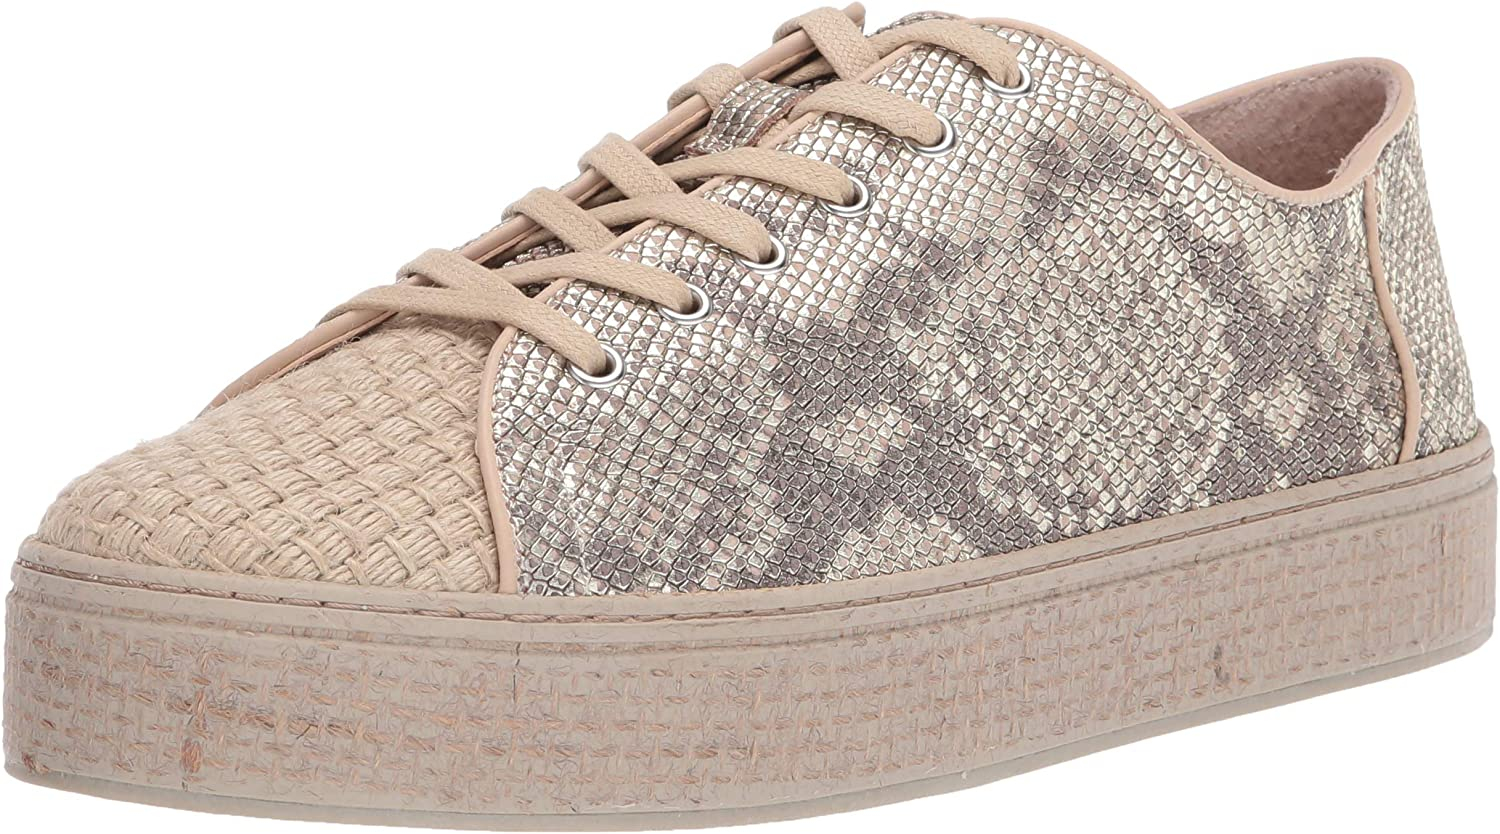 Vince Camuto Women's CALITRIE Sneaker